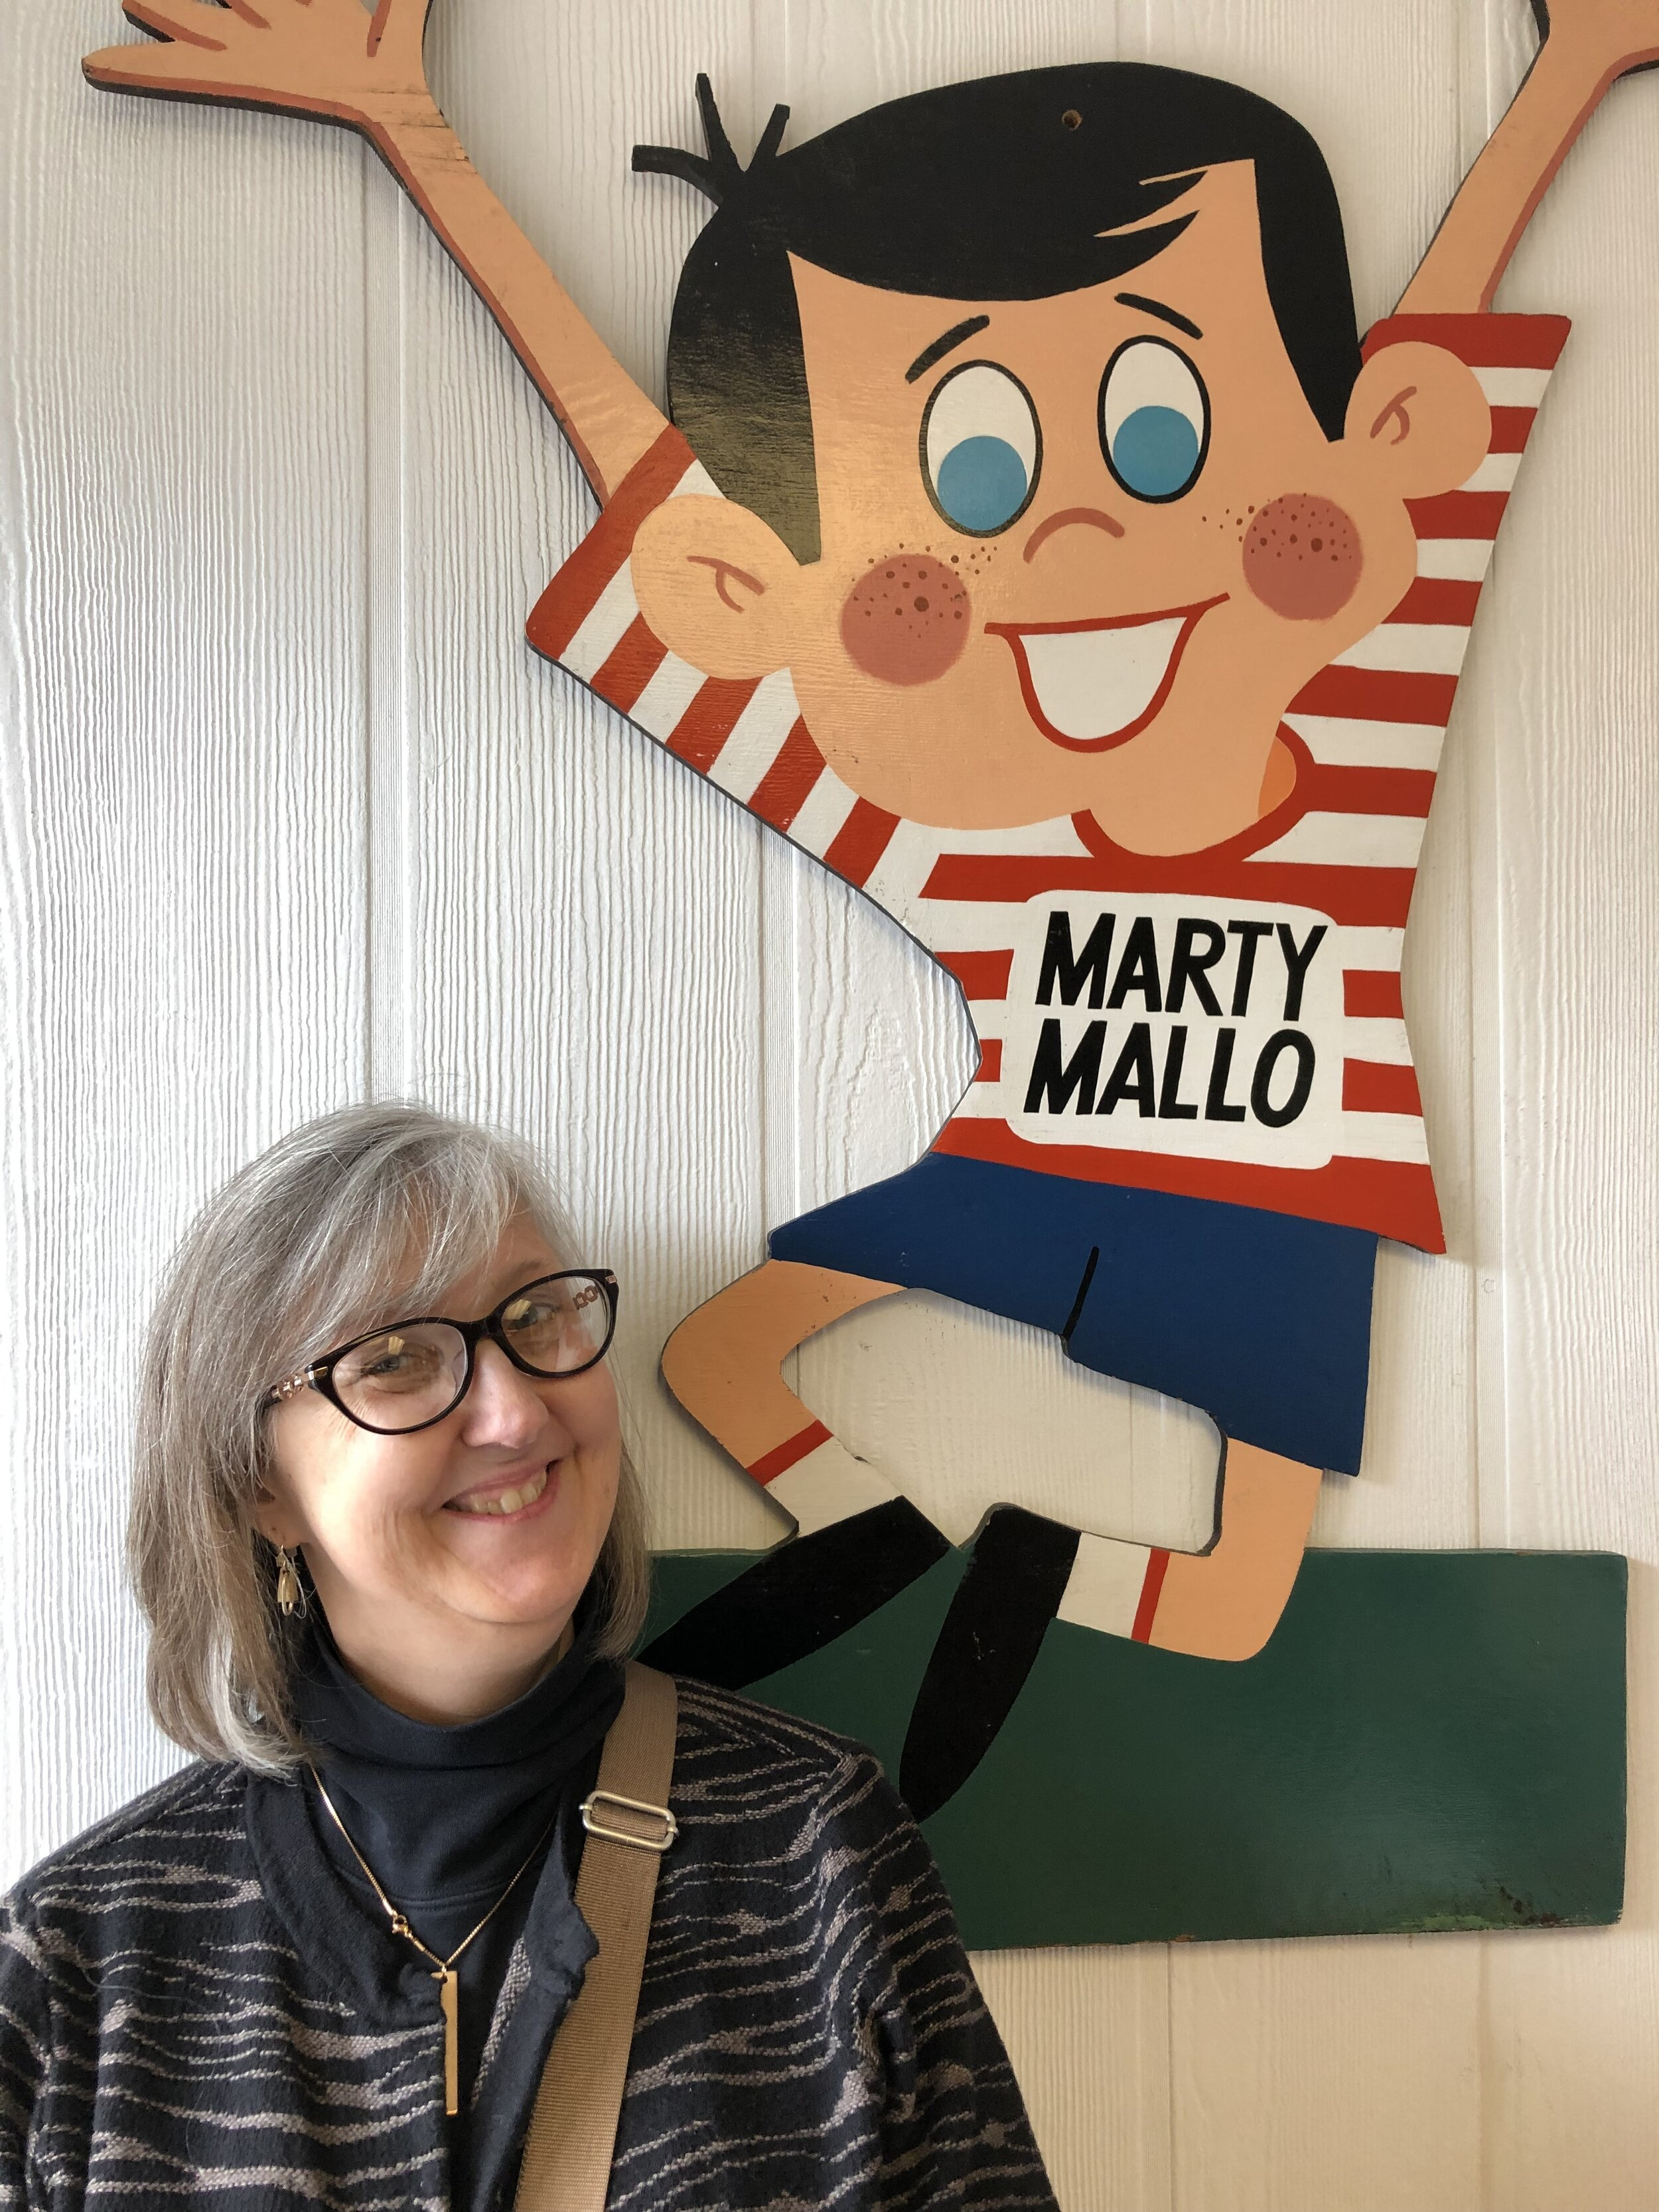 Sarah with Marty Mallo at the Mallo Cup and Clark Bar factory (Boyer Candy Company) in Alatoona, Pennsylvania.